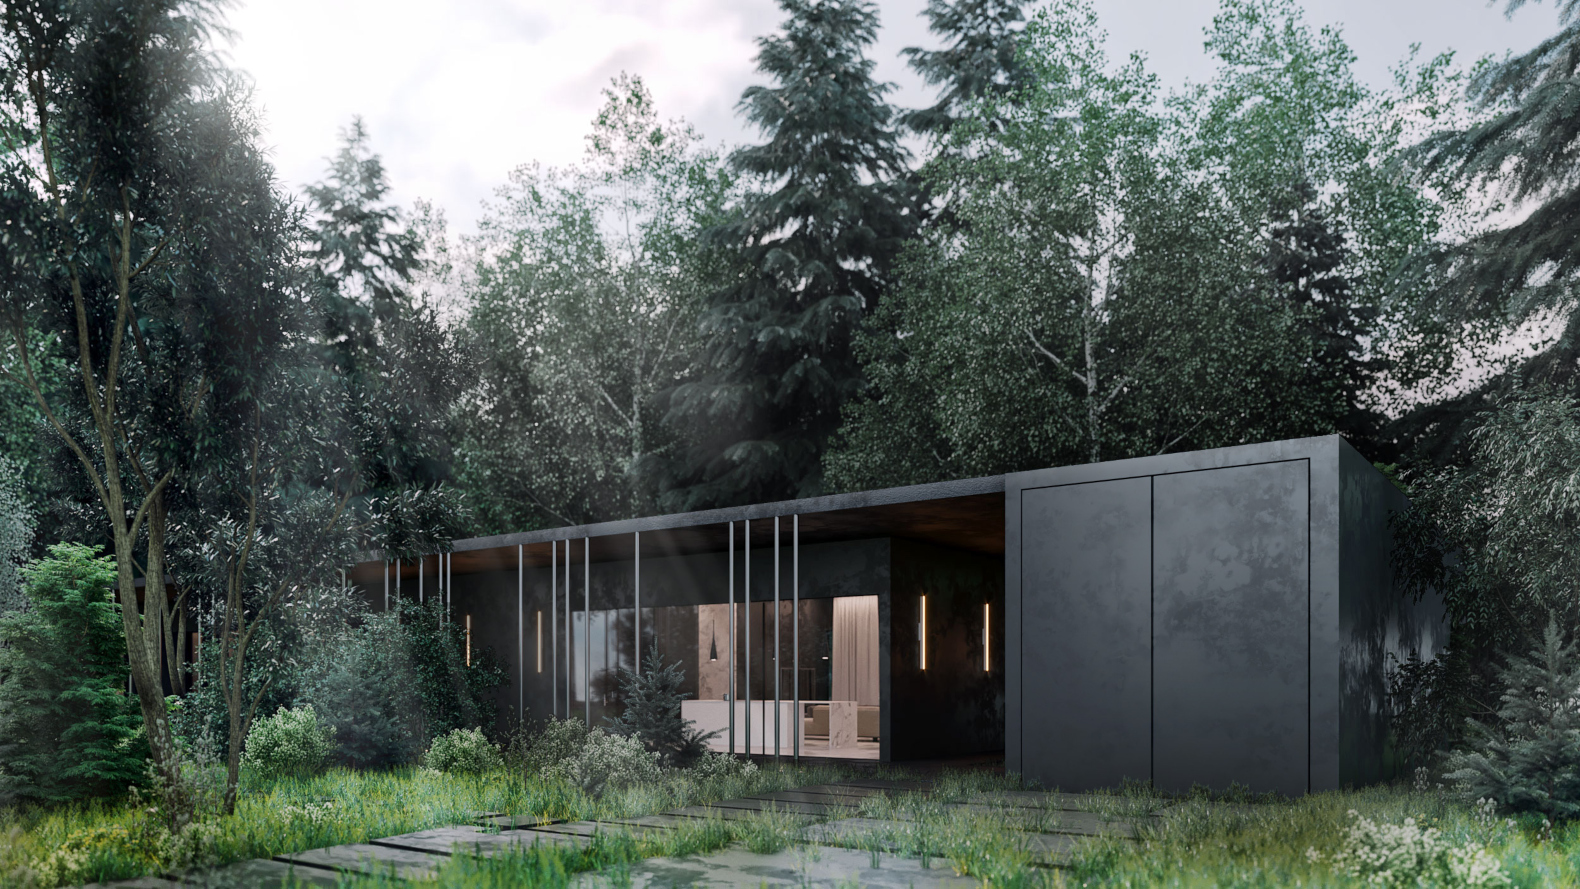 Mysterious Black Villa is to be tucked in the lush forests just outside of Moscow